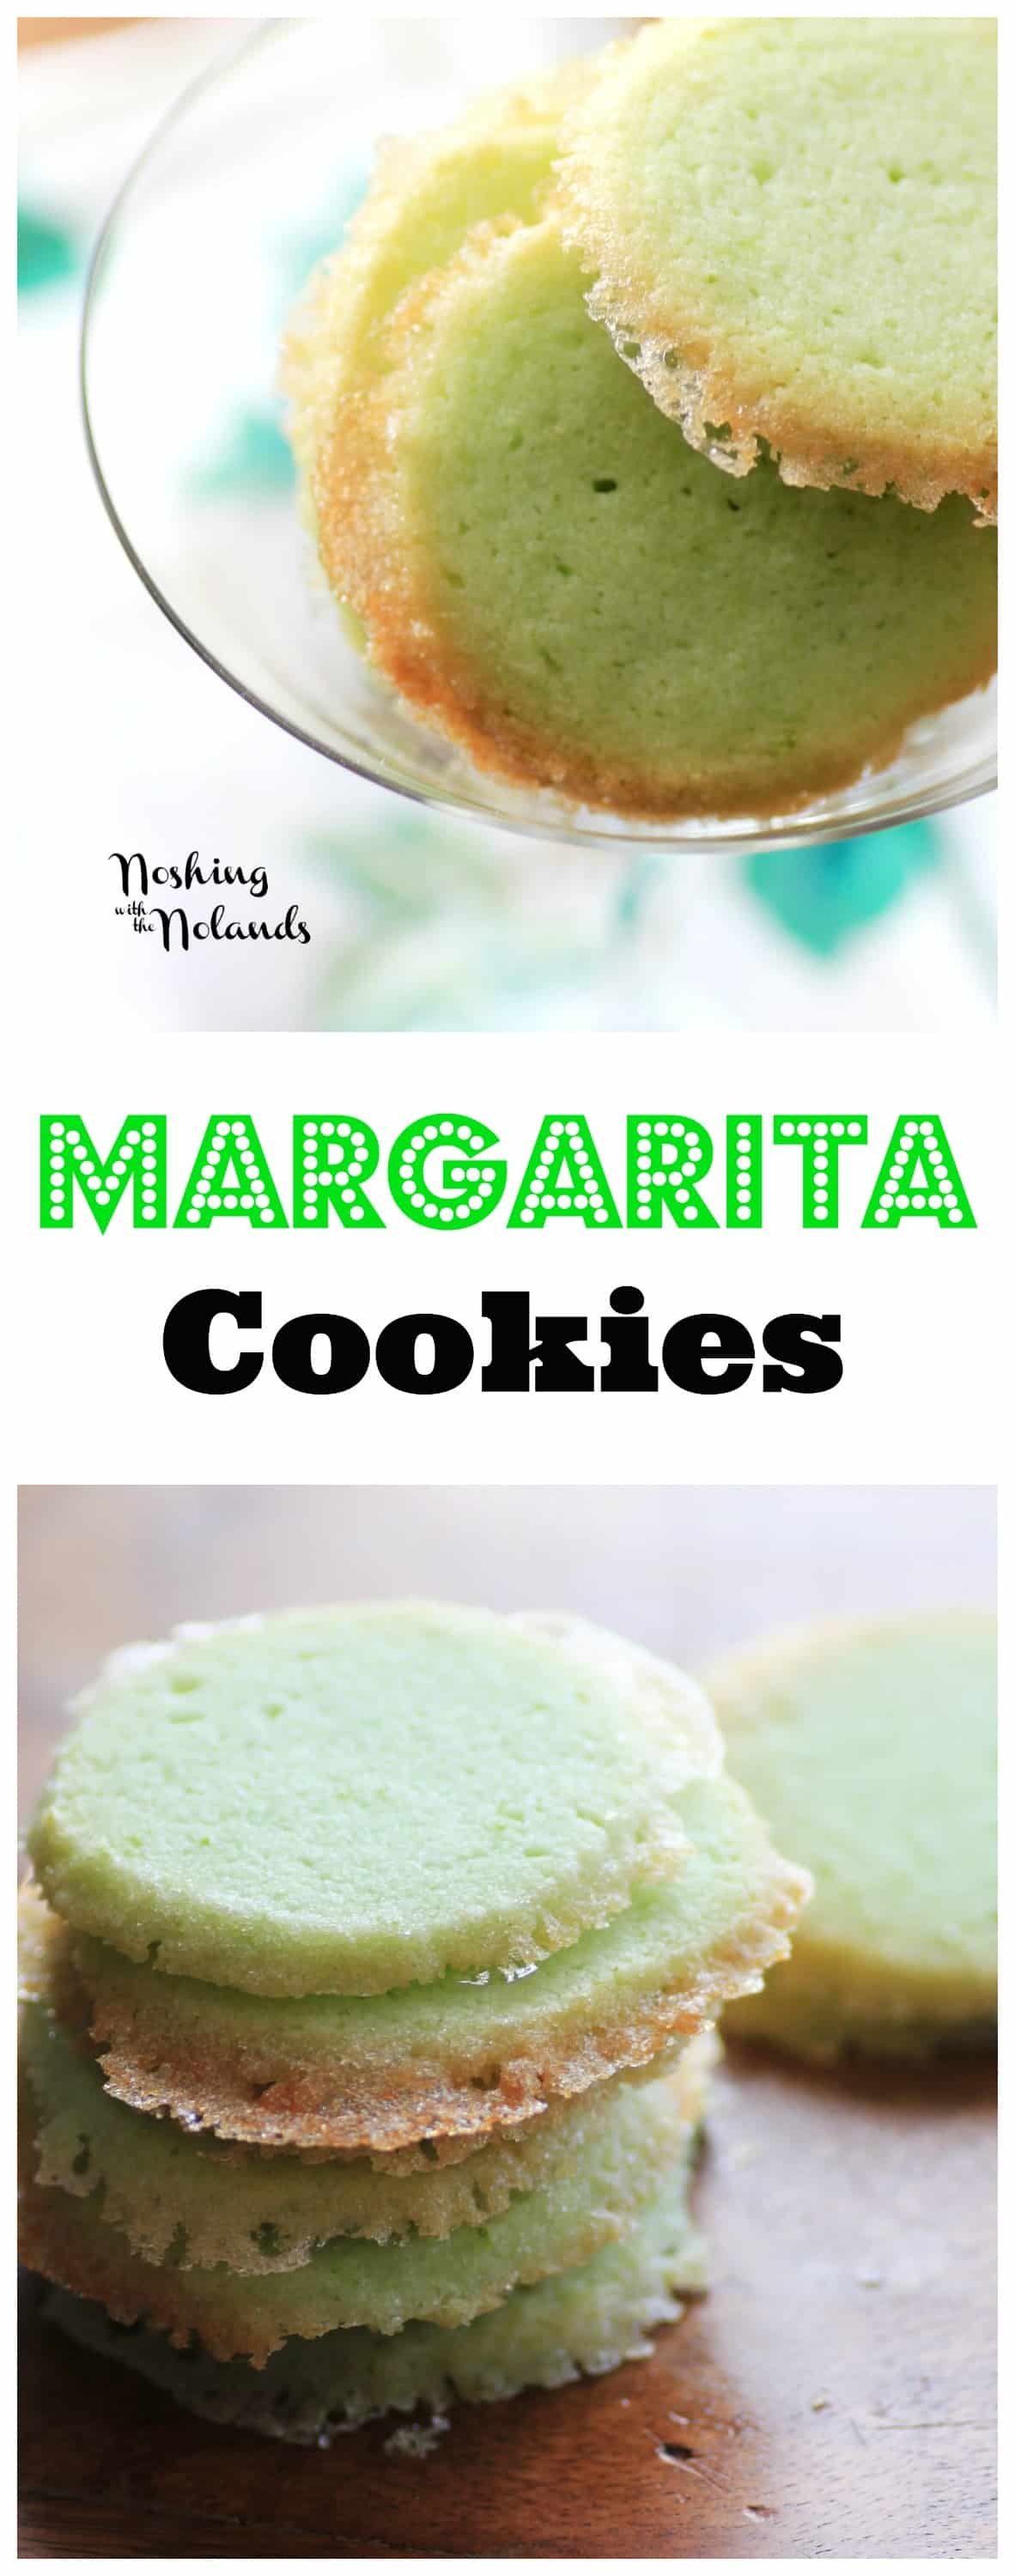 Margarita Cookies for Creative Cookie Exchange